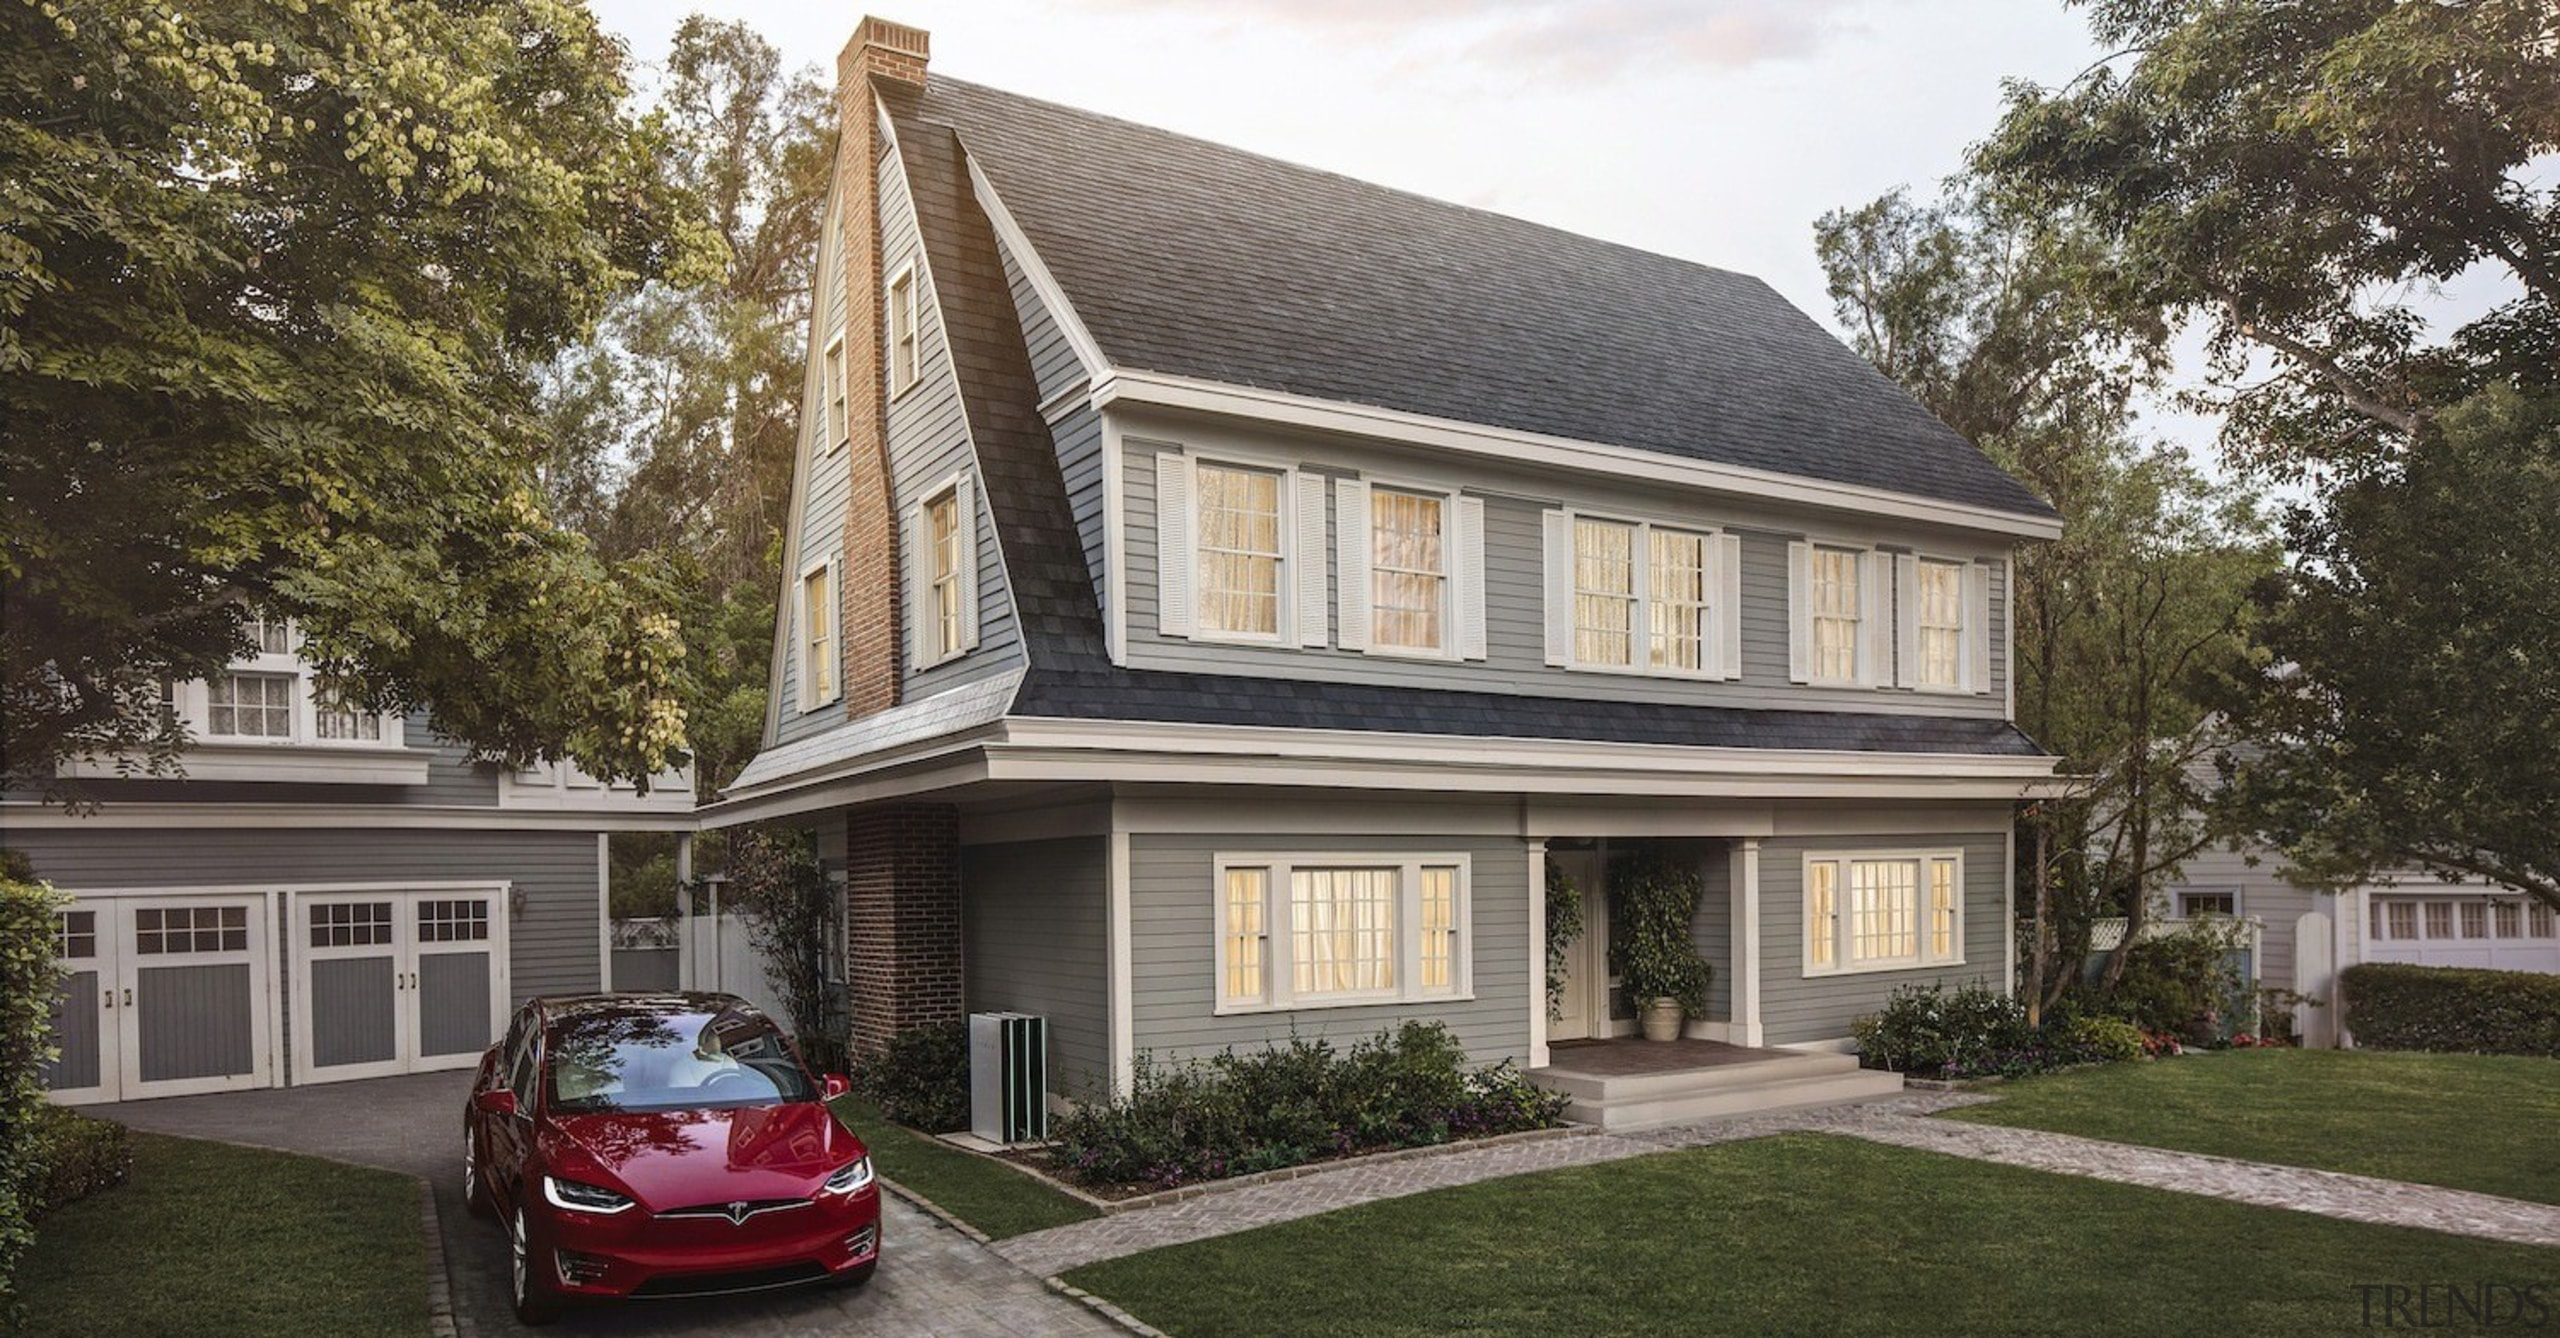 A home with Tesla Solar Roof tiles installed building, cottage, estate, facade, family car, home, house, property, real estate, residential area, roof, siding, suburb, window, gray, black